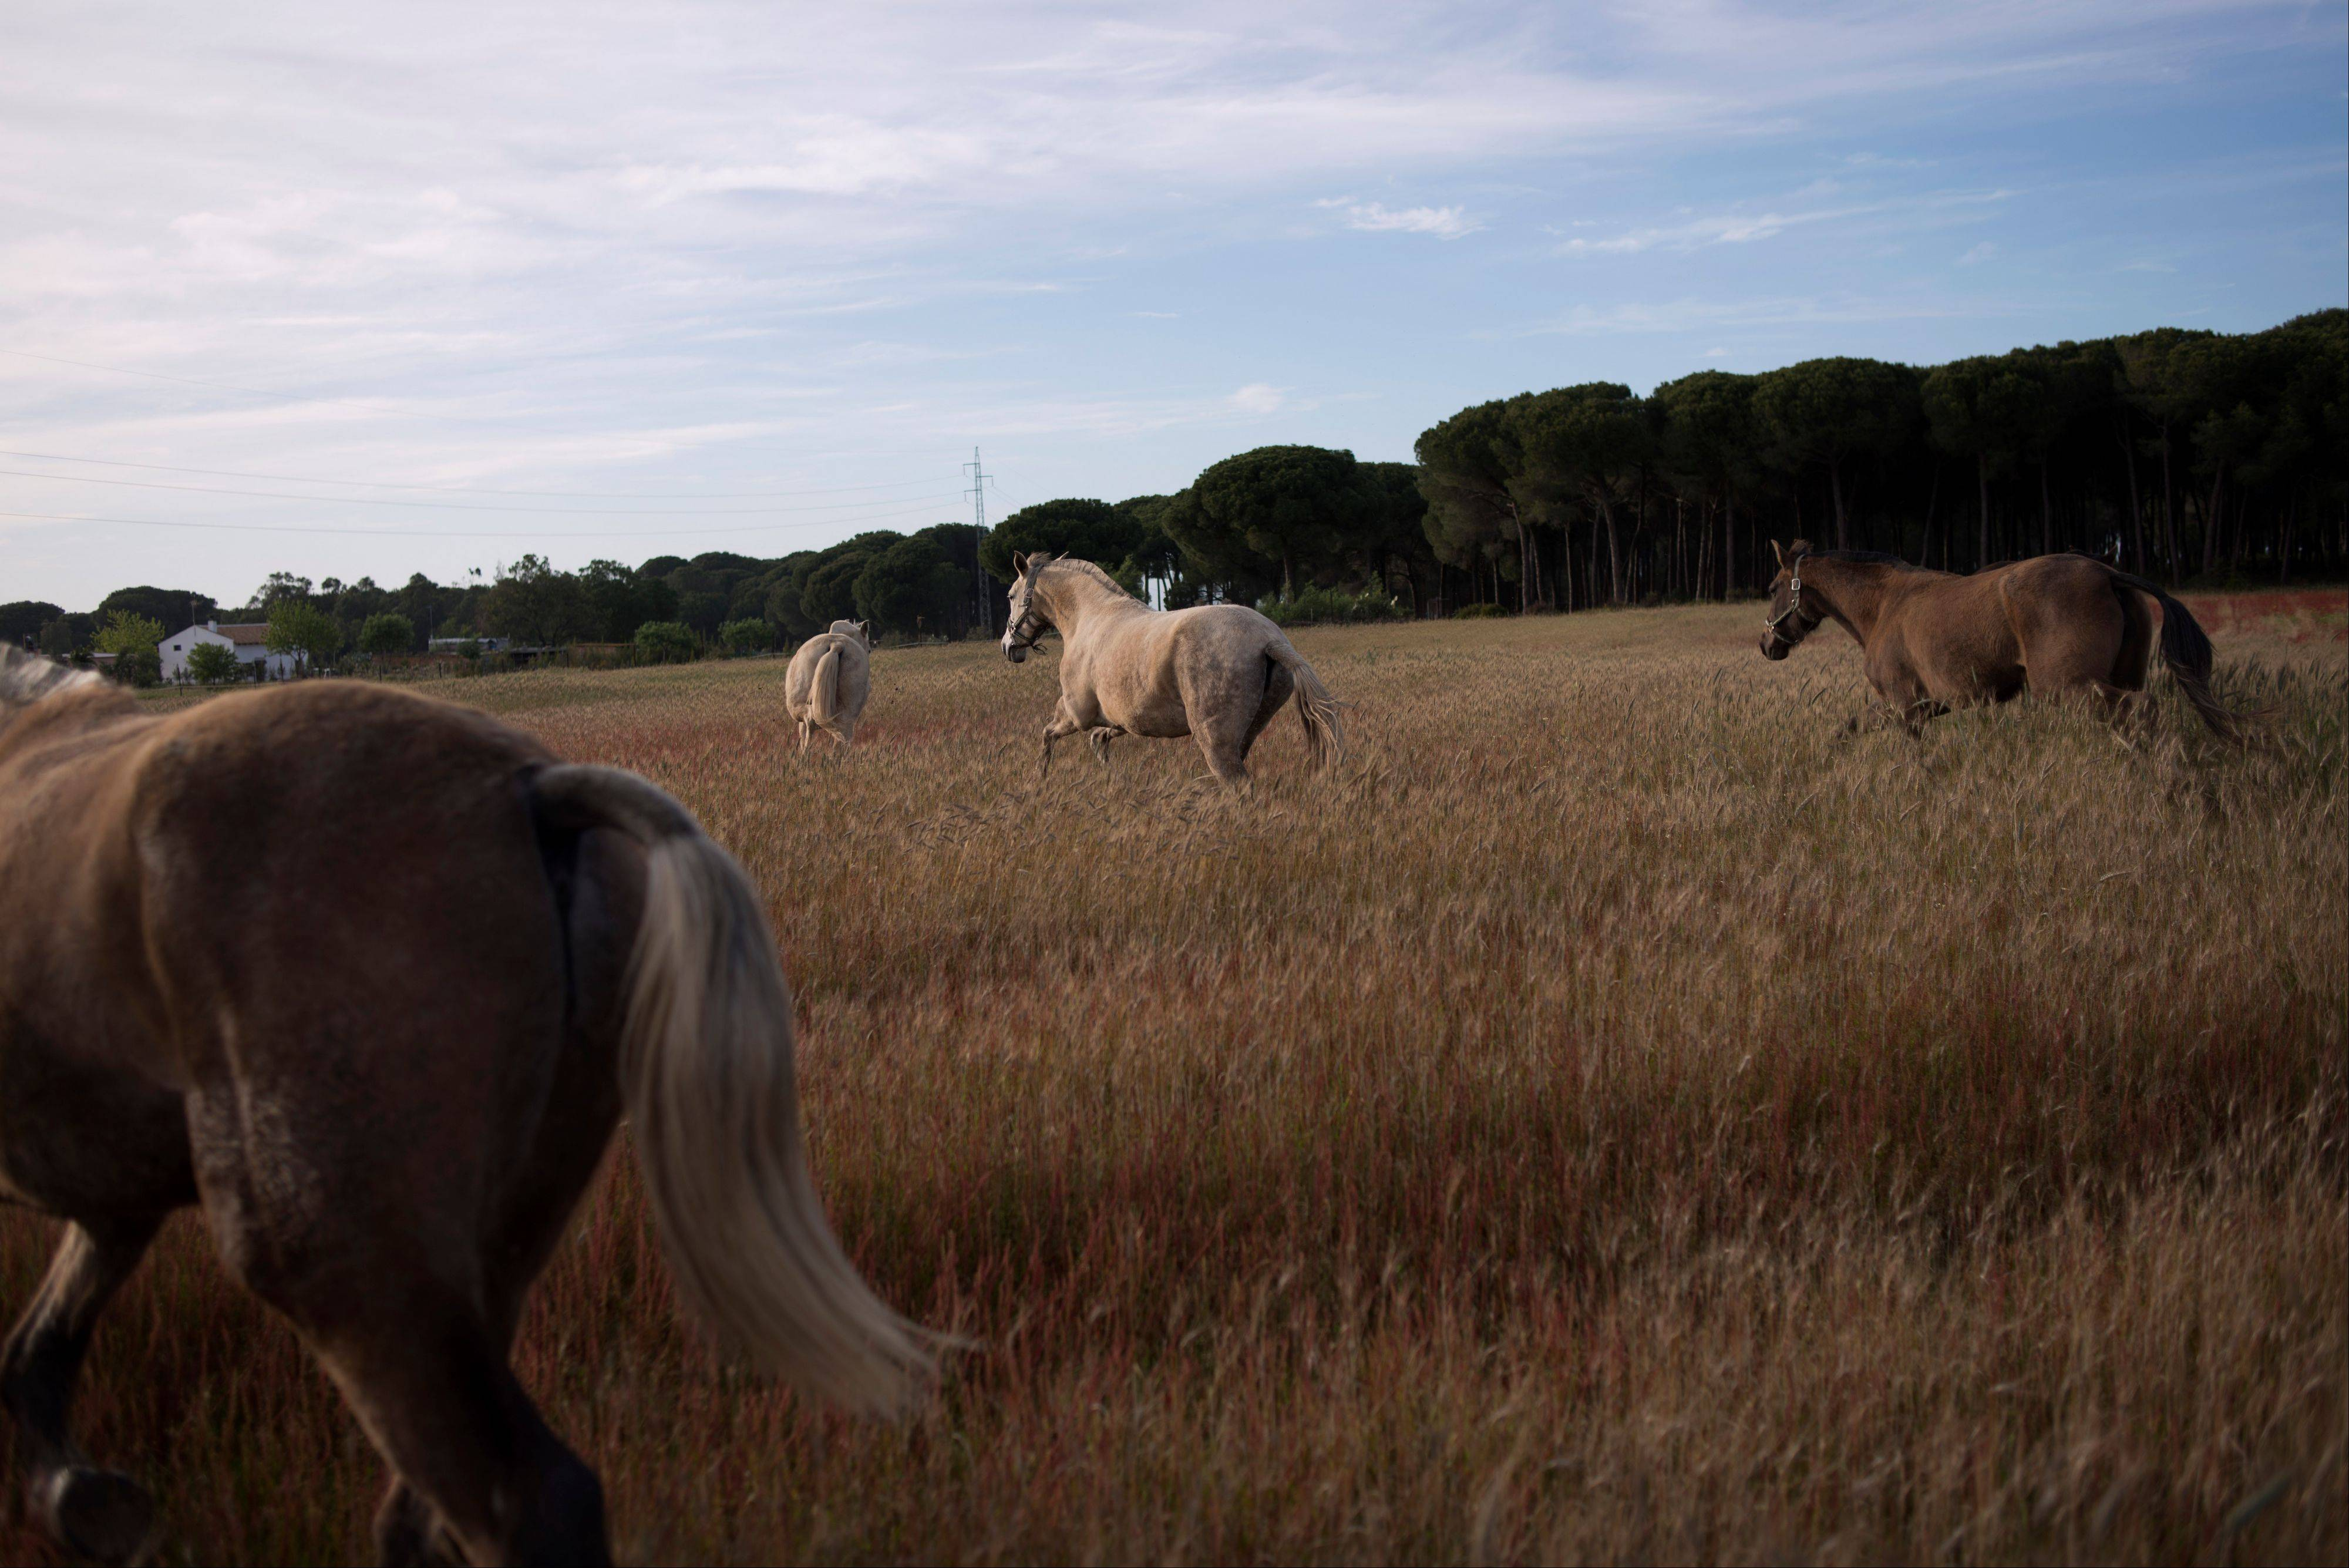 �Pura Raza Espanola� or Pure Spanish Breed mares belonging to breeder Francisco Jose Rodriguez at �La Yeguada de Cuatro Vientos� ranch in Almonte, in the southern Spanish region of Andalusia. Barring an unlikely reprieve, Mesa� purebreds will be turned into horse meat for export come July.